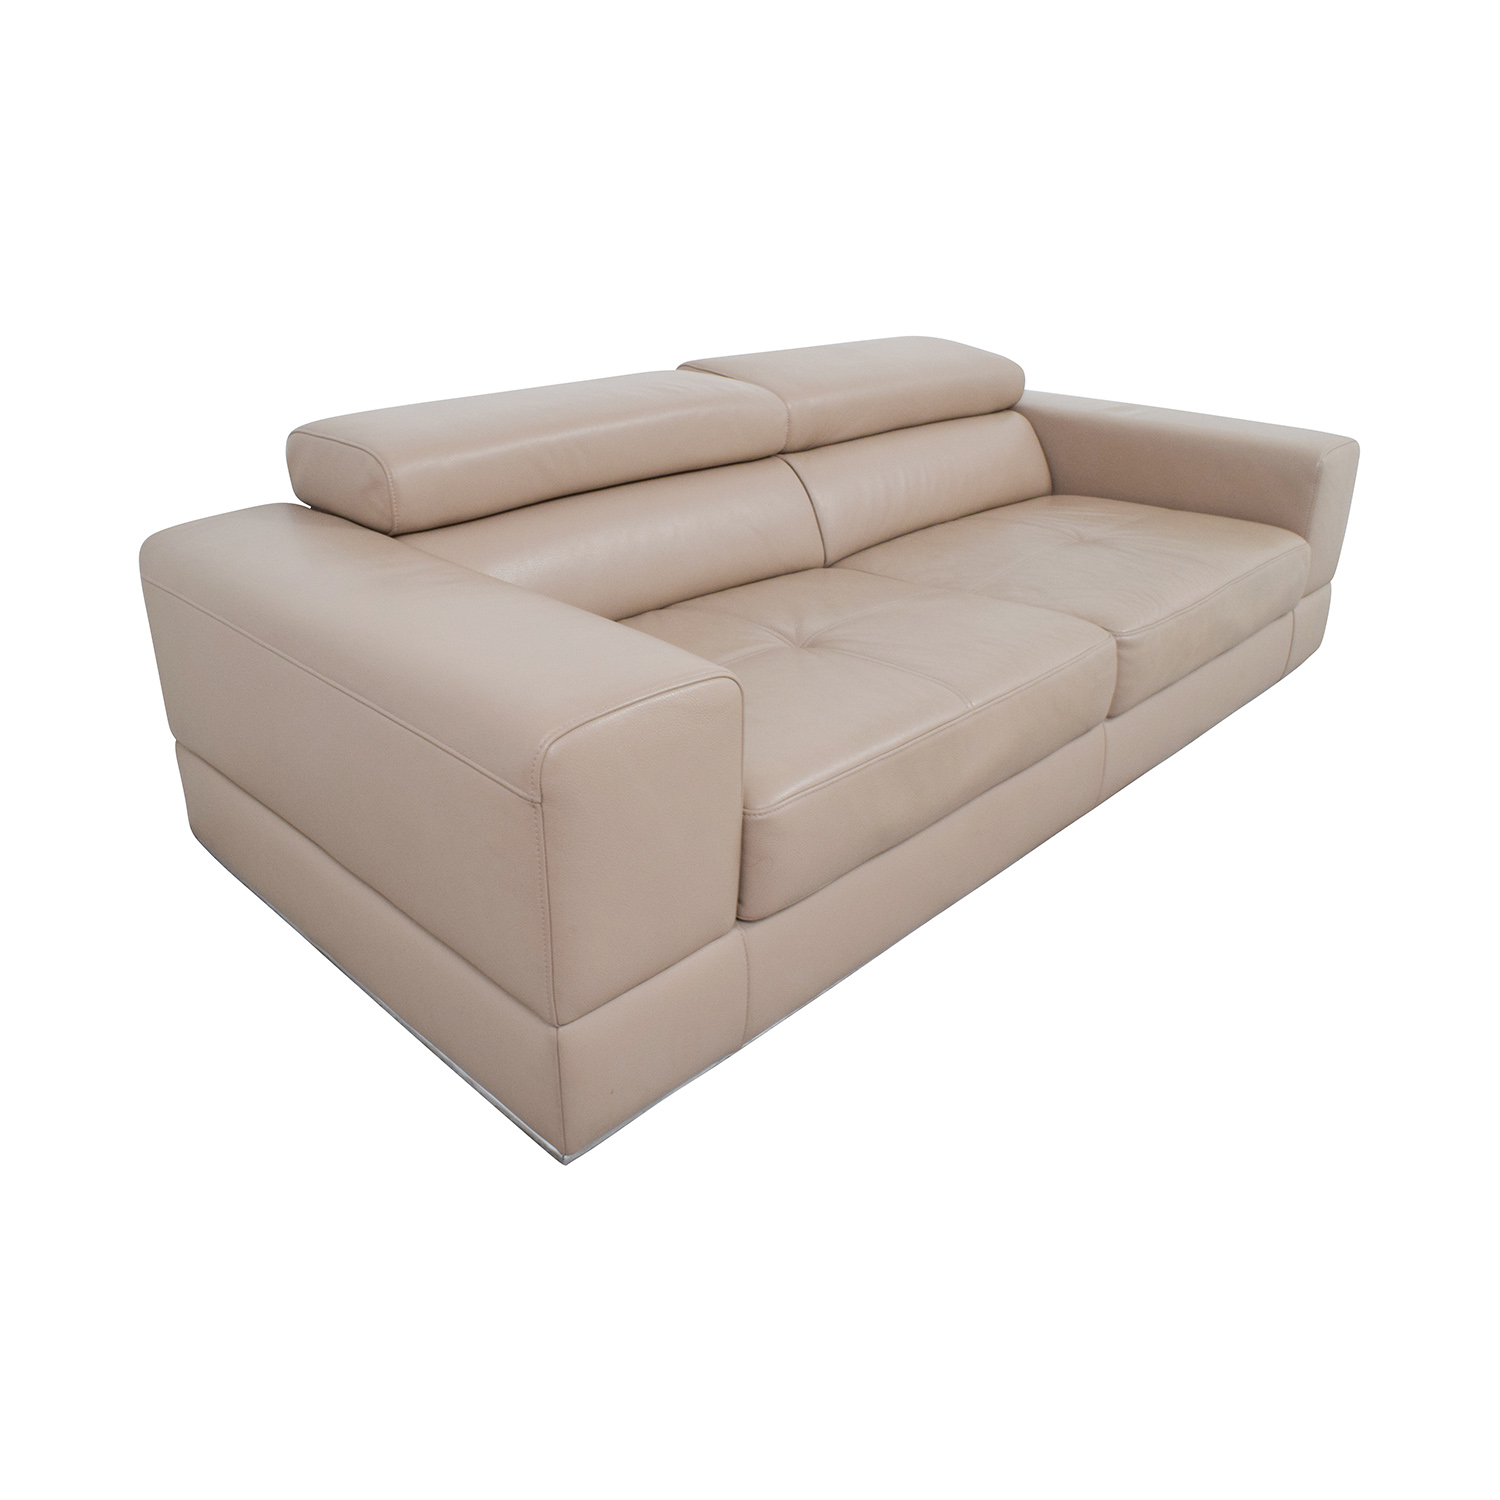 82 off lazzoni lazzoni beige leather sofa sofas for Cheap classic sofas